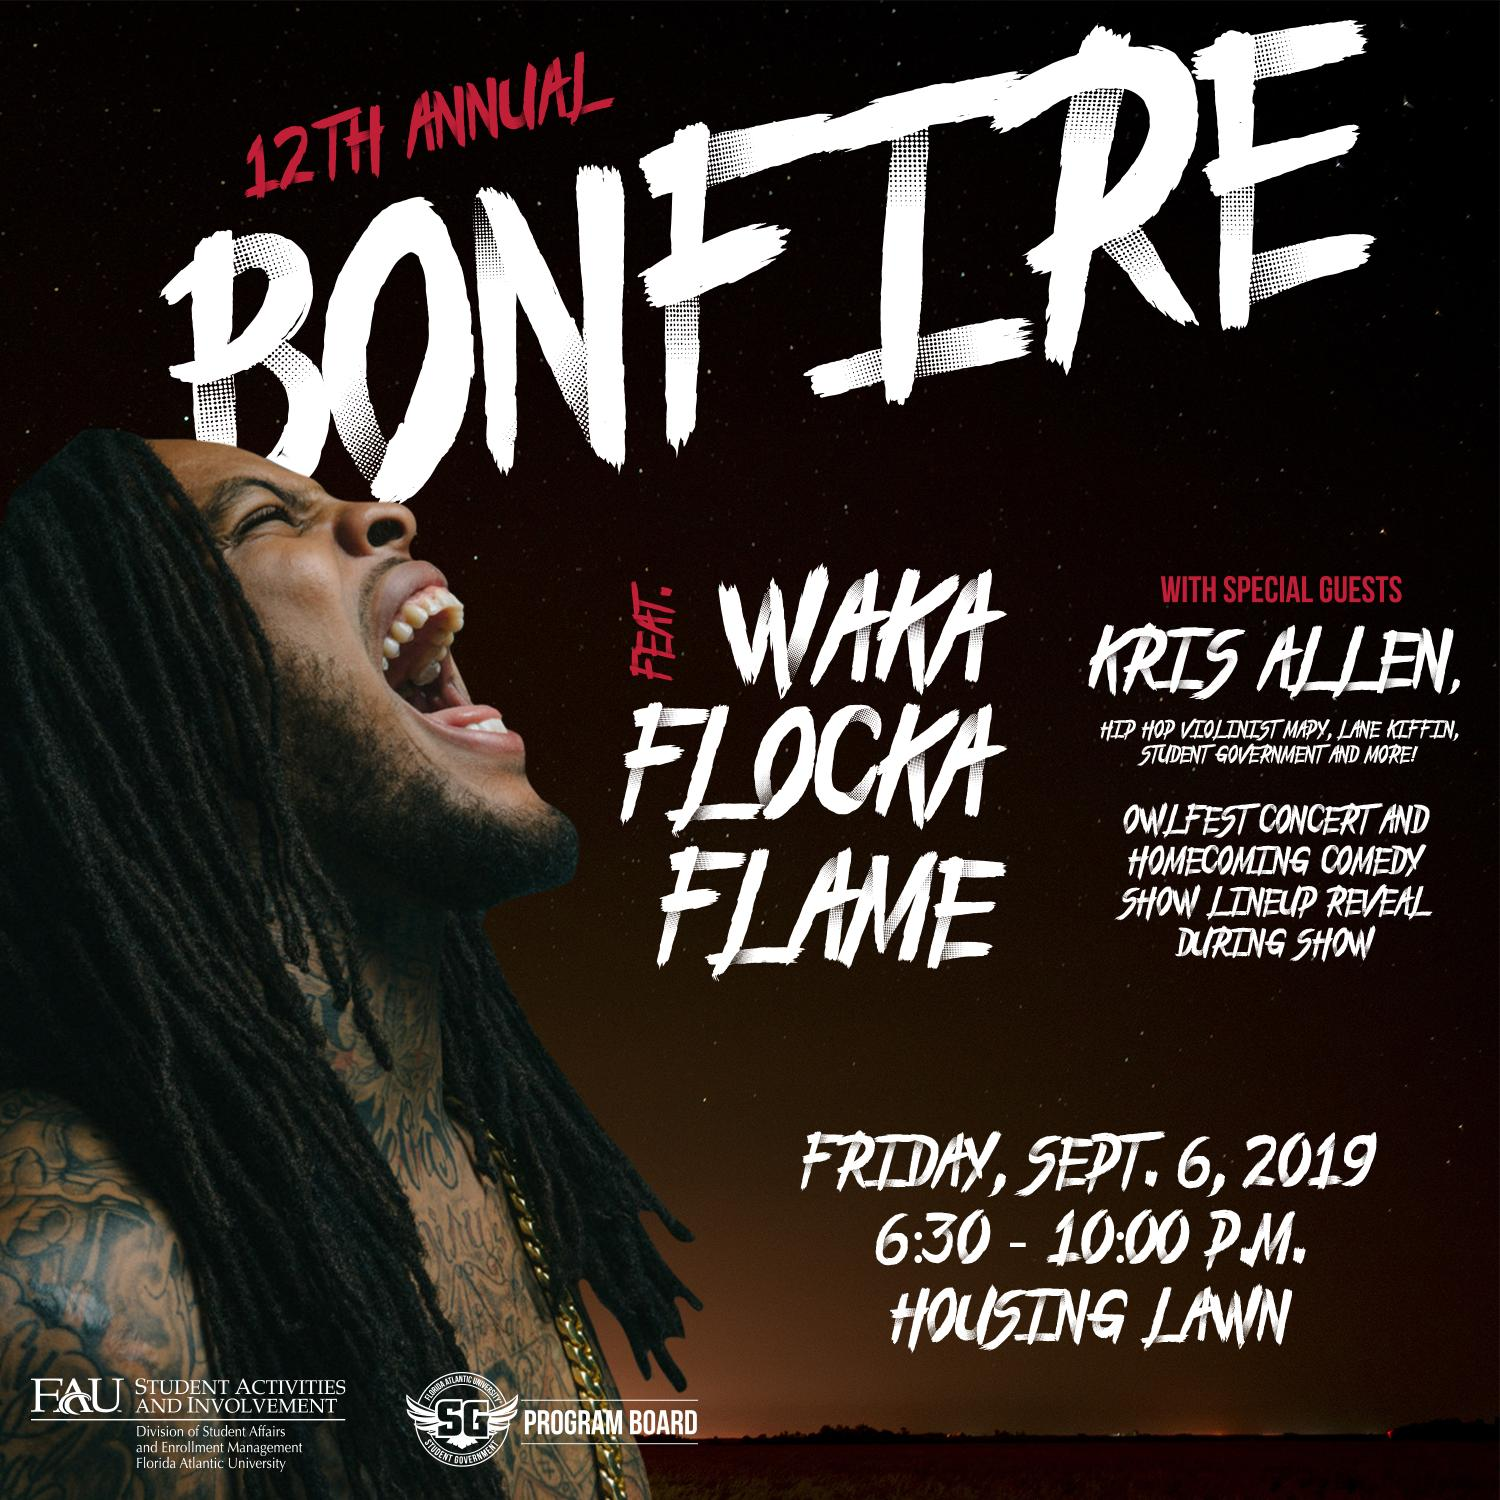 2019 Bonfire promotional poster. Courtesy of FAU Program Board's Twitter.